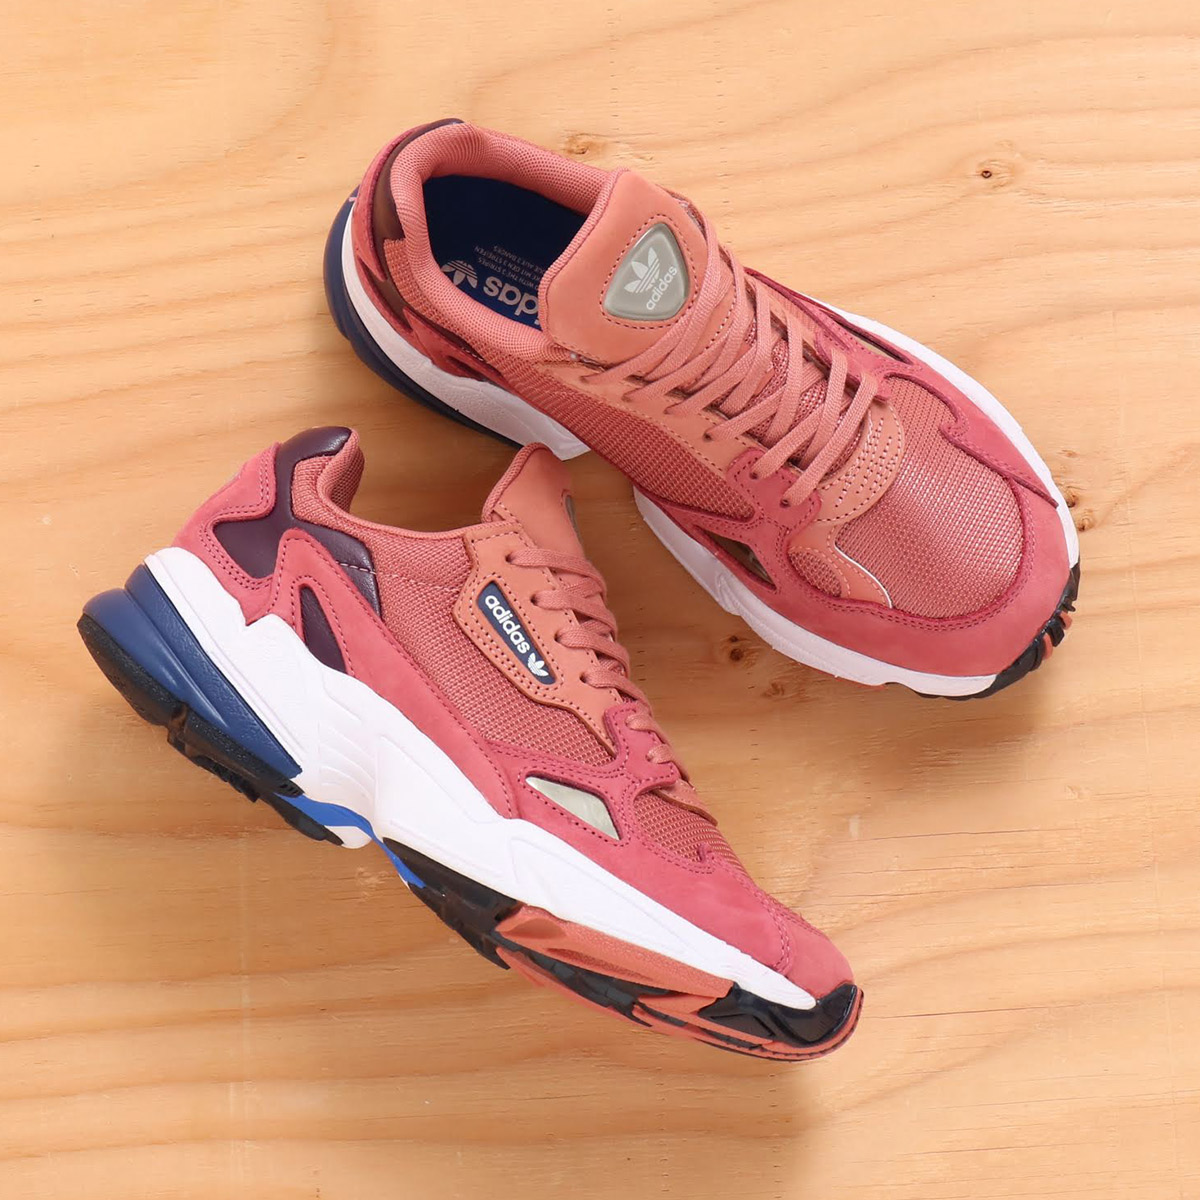 adidas Originals FALCON W (Adidas originals falcon W) RAW PINK/RAW  PINK/DARK BLUE 18FW-I